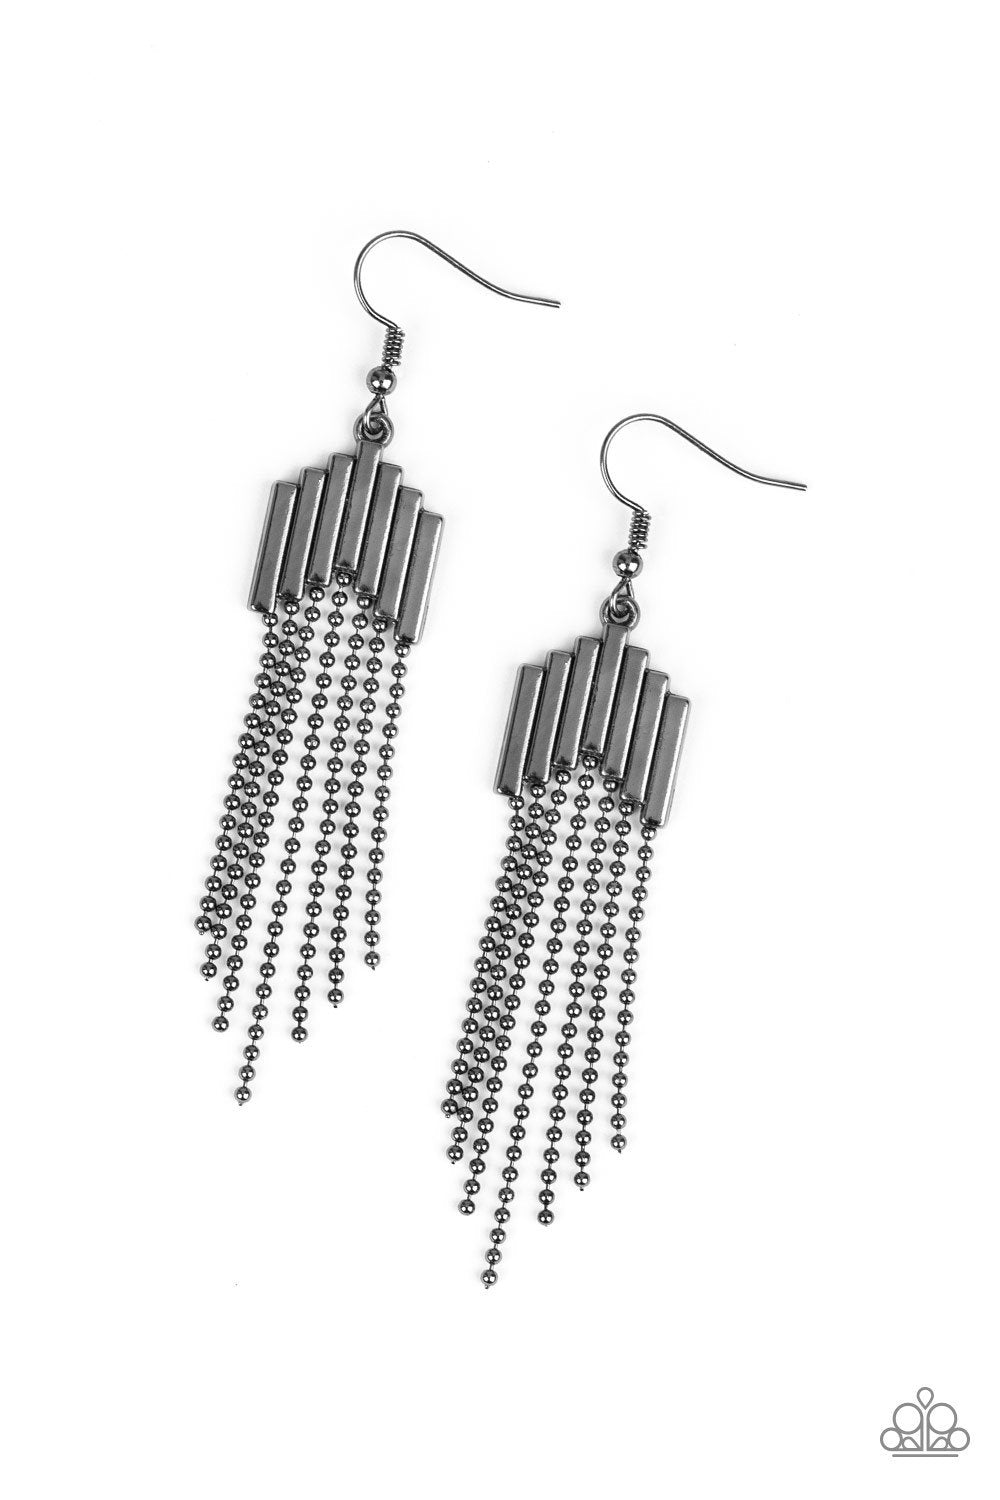 Paparazzi Earring ~ Radically Retro - Black